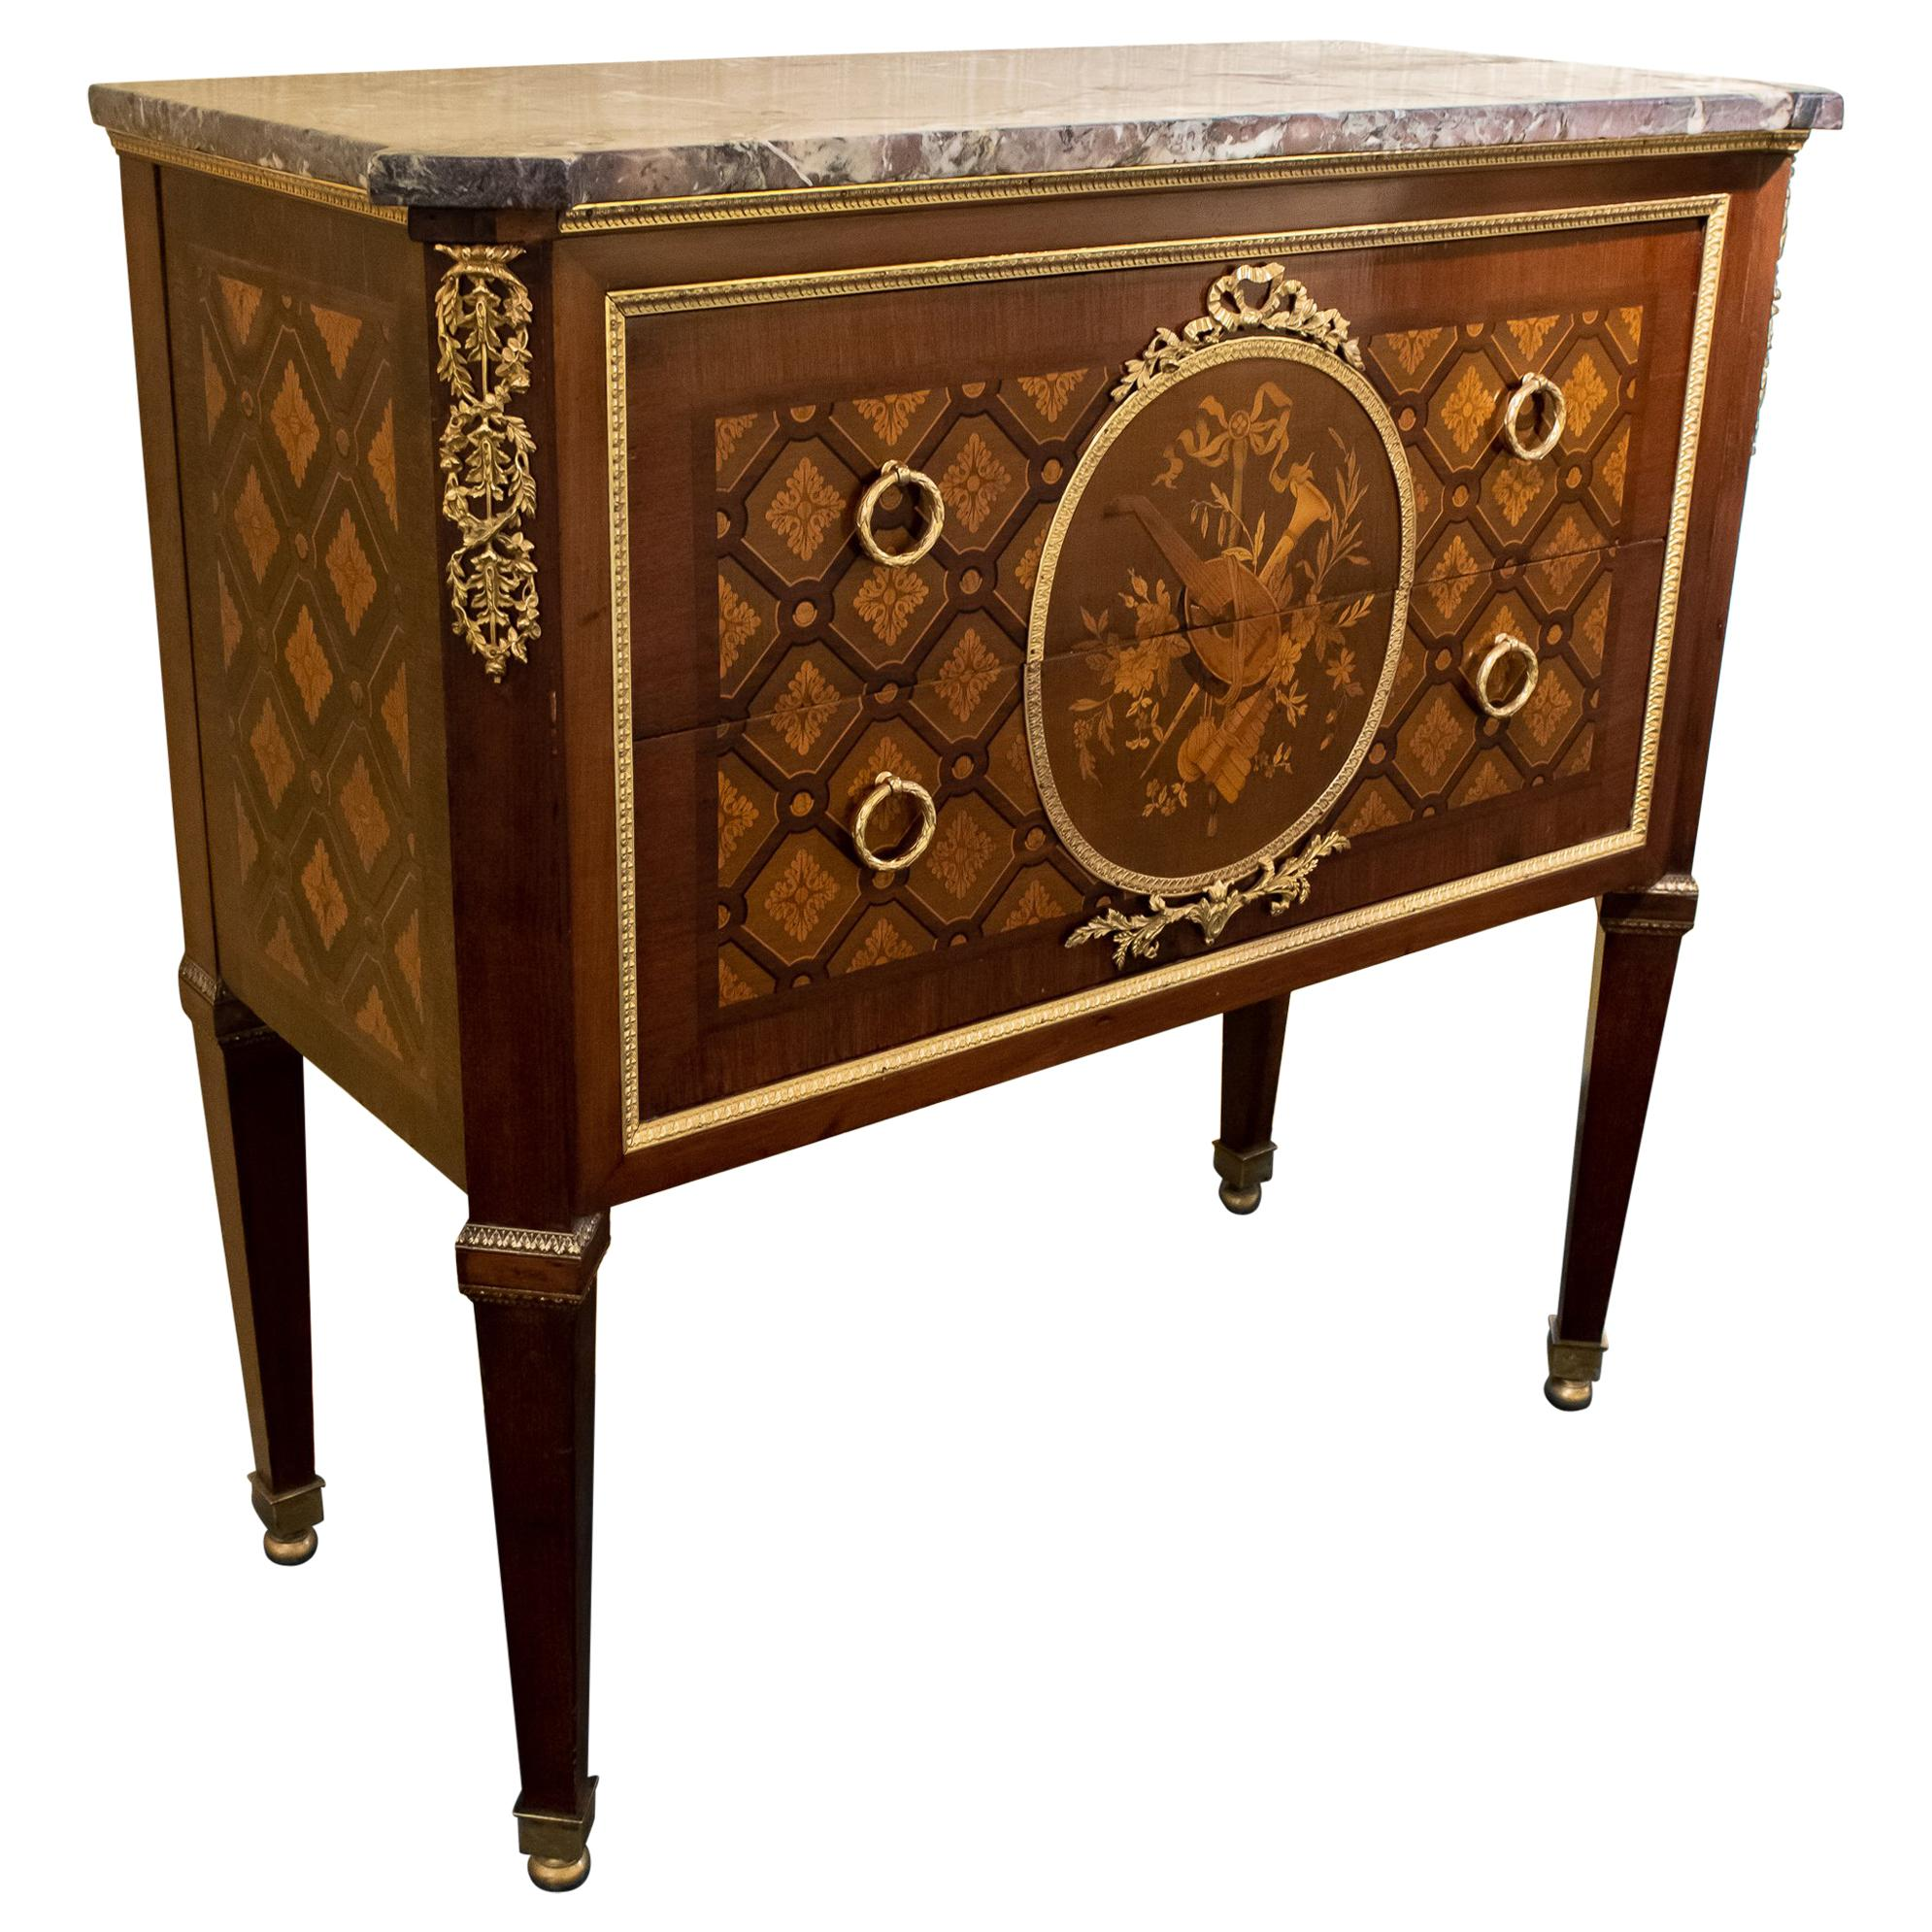 French Louis XVI Style Marquetry Inlaid Marble-Top Commode